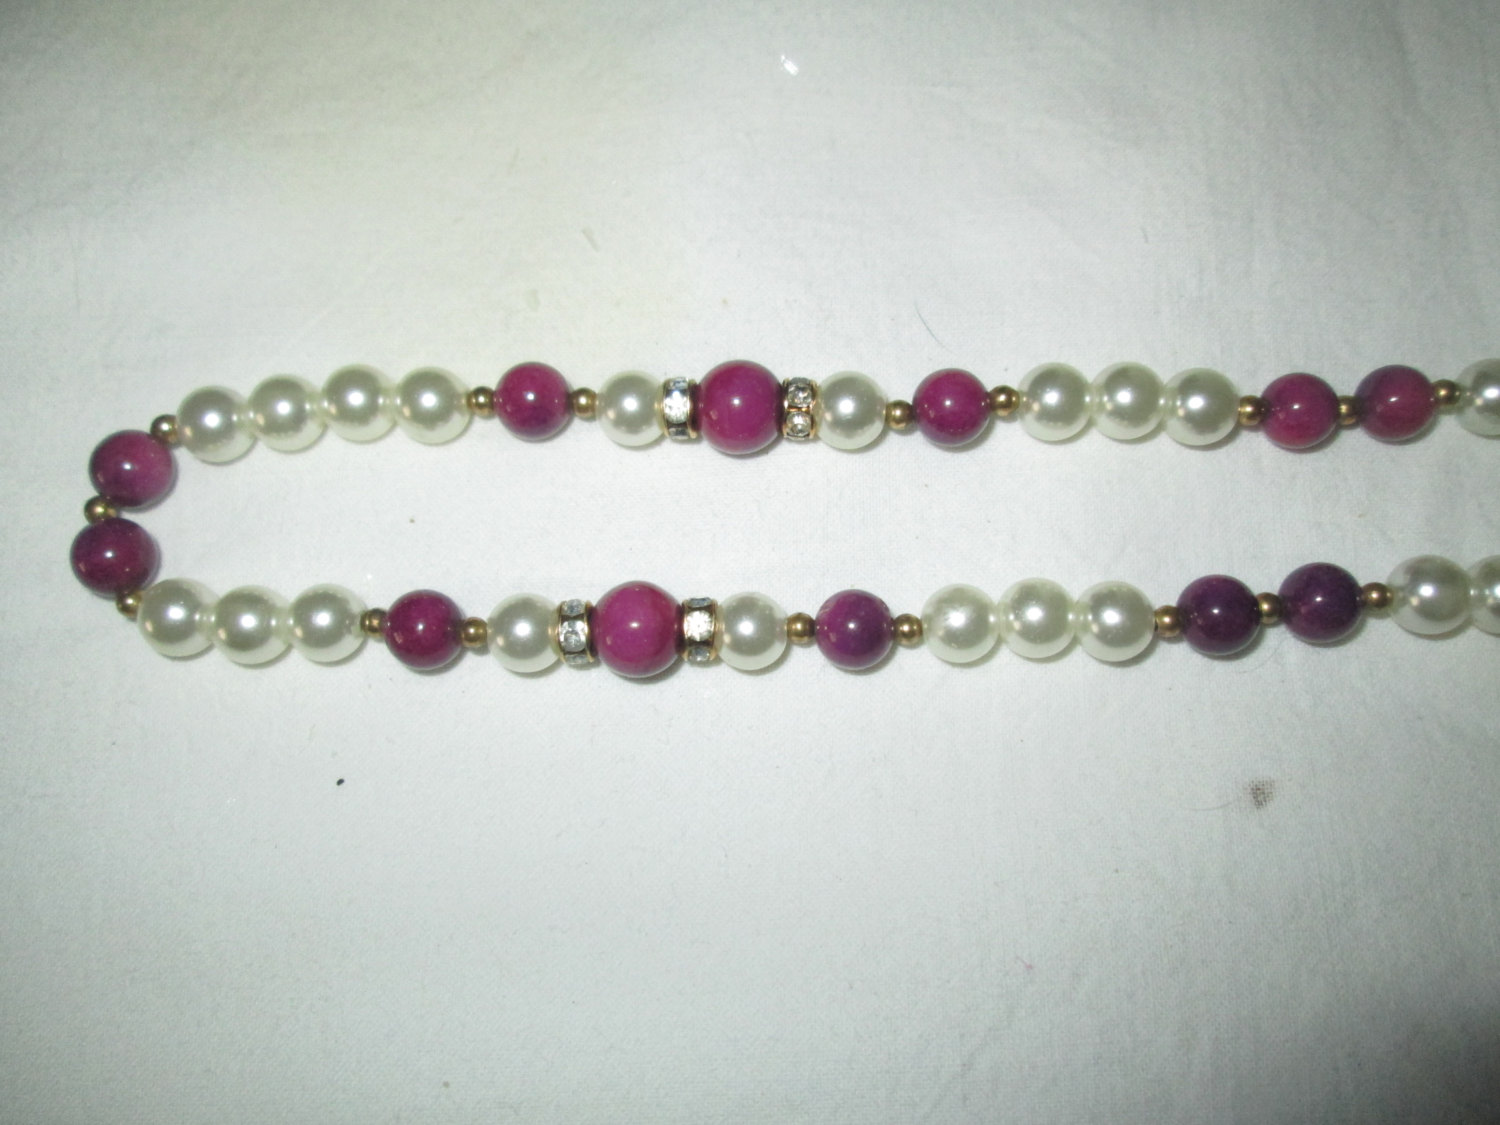 Beautiful Necklace Pearl with purple glass beads gold trim beads with rhinestones between